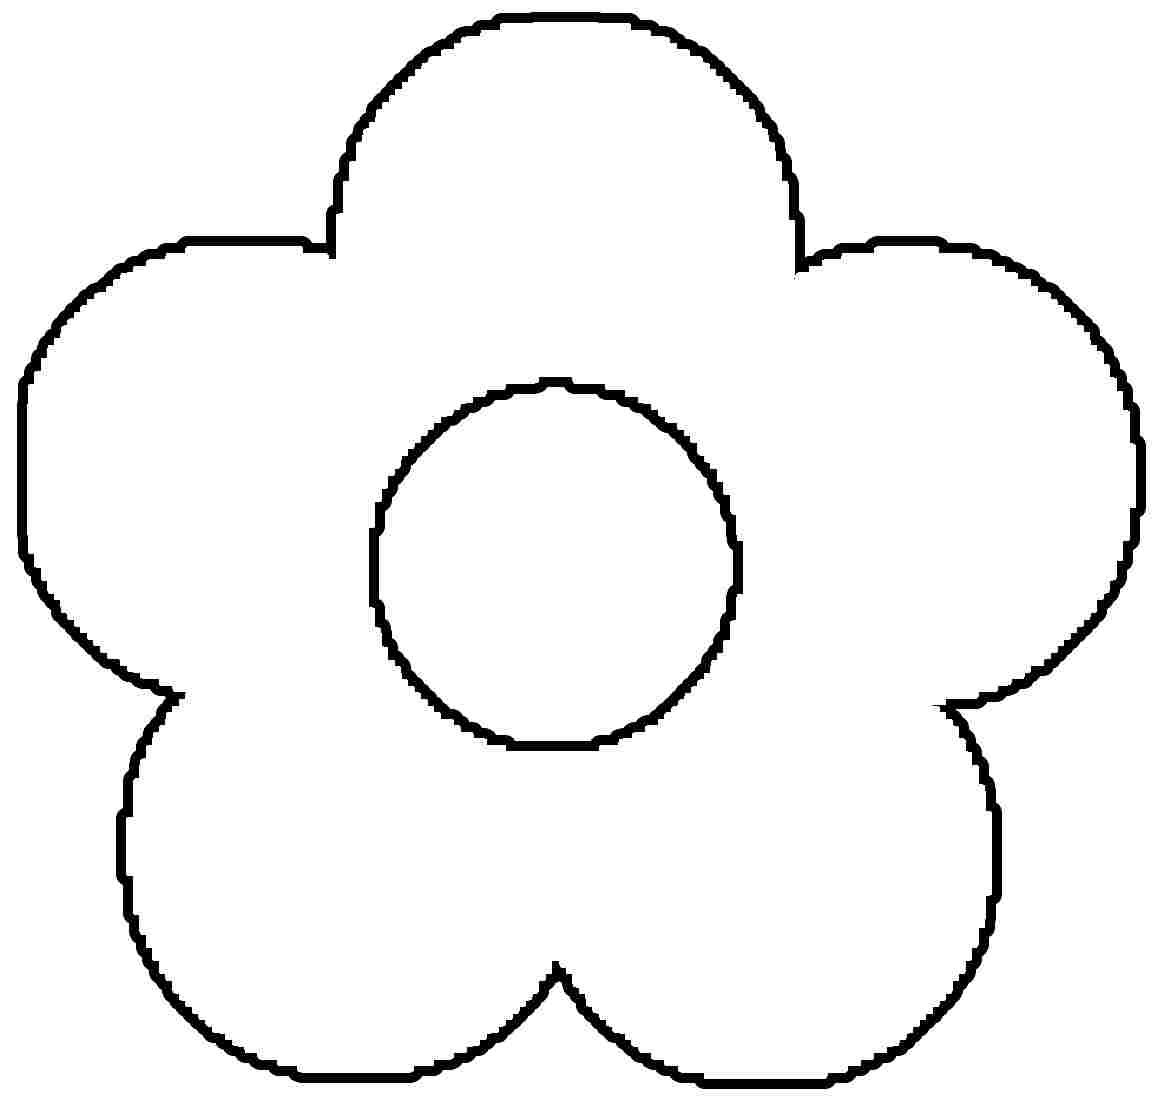 outline pictures flowers coloring pages for kids | Free Flower Coloring Pages For Kids - Coloring Home